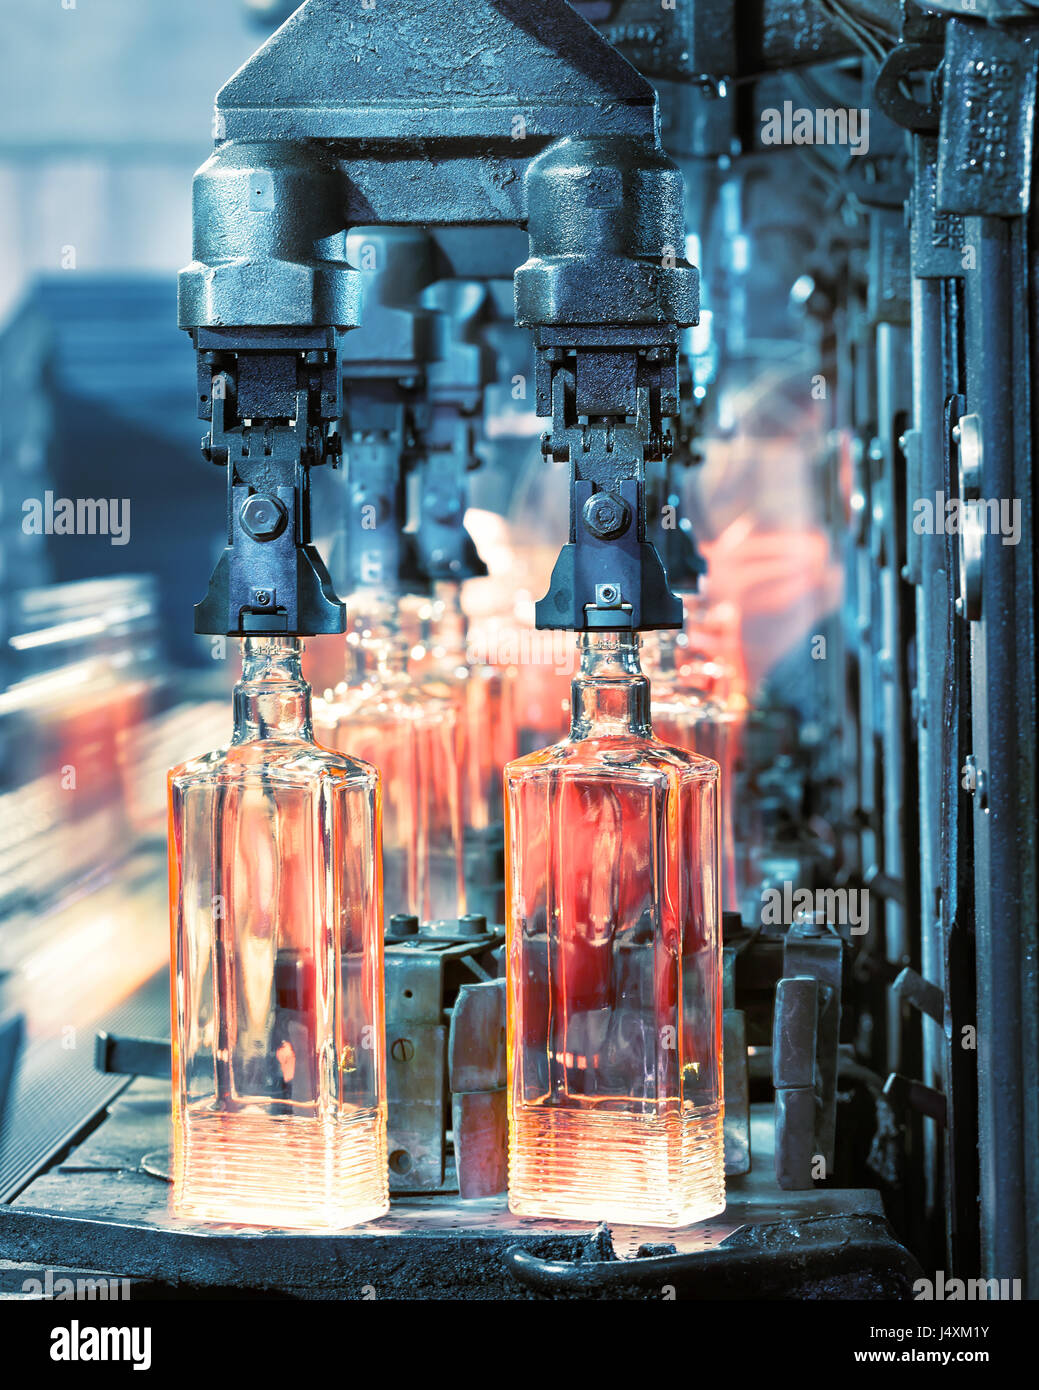 The machine for the production of glass bottles in the production process is tinted in blue - Stock Image